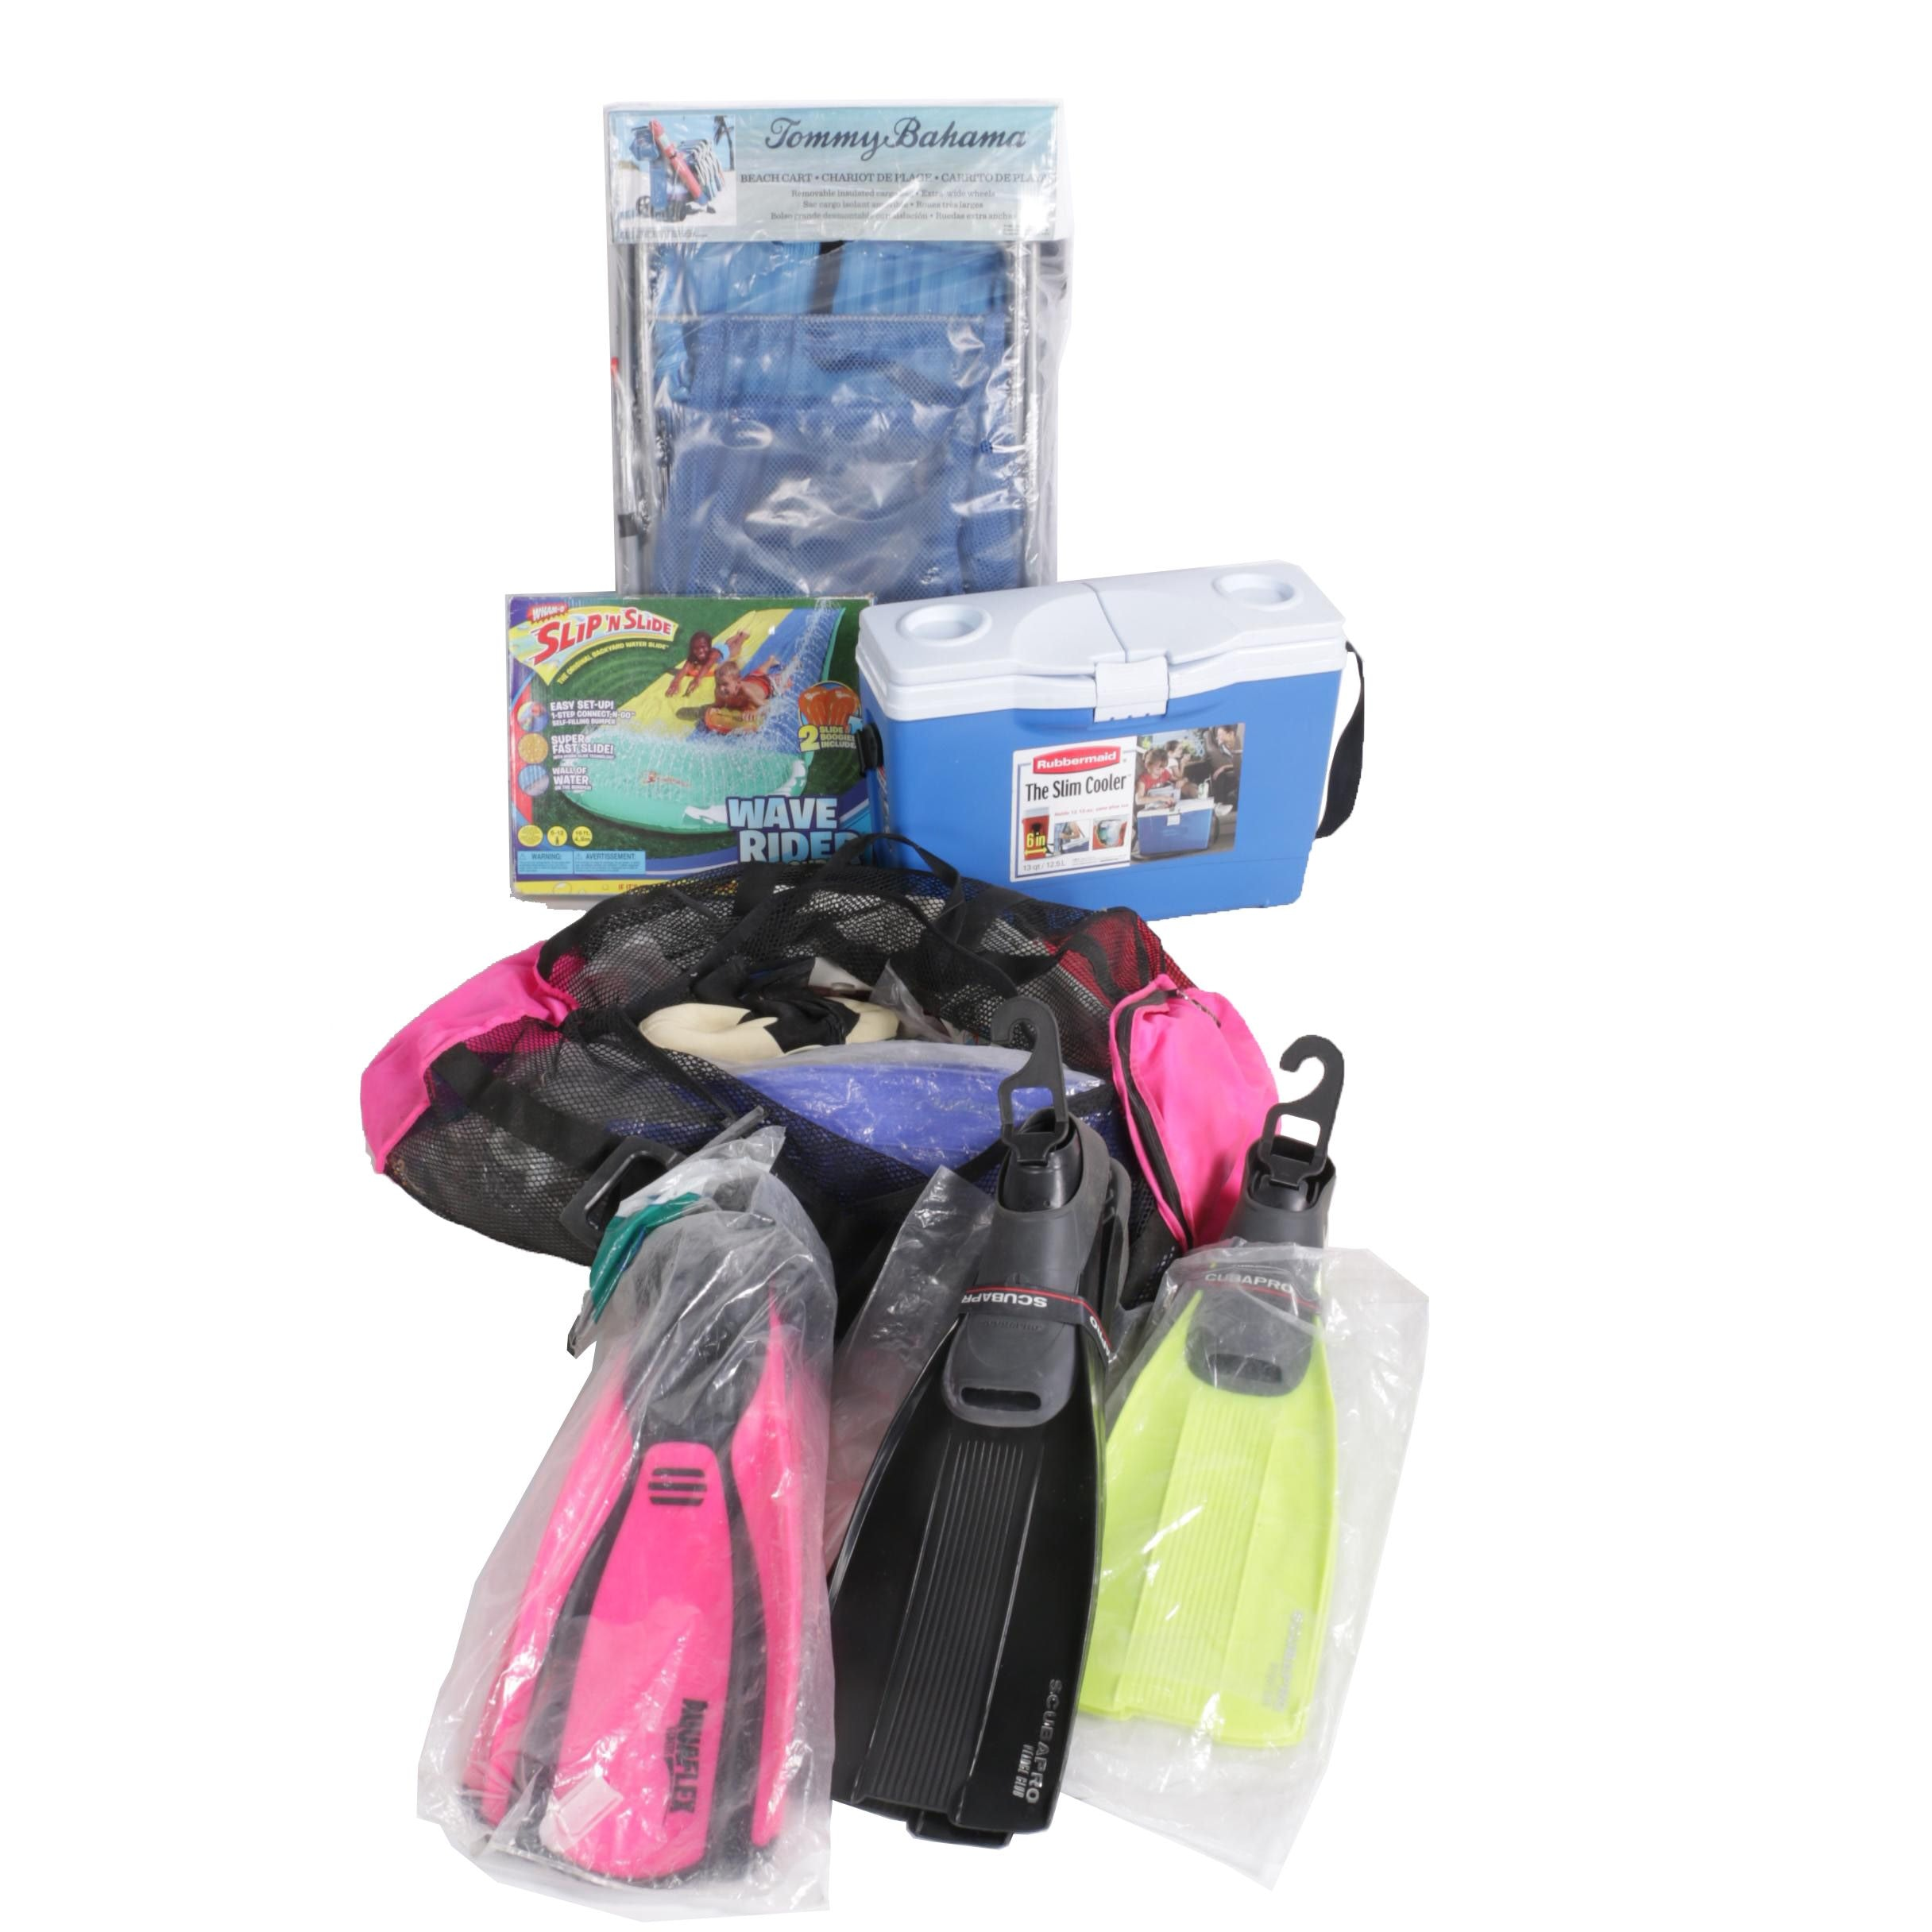 Assortment of Beach Items Including Foot Fins, Cooler, Beach Cart and More